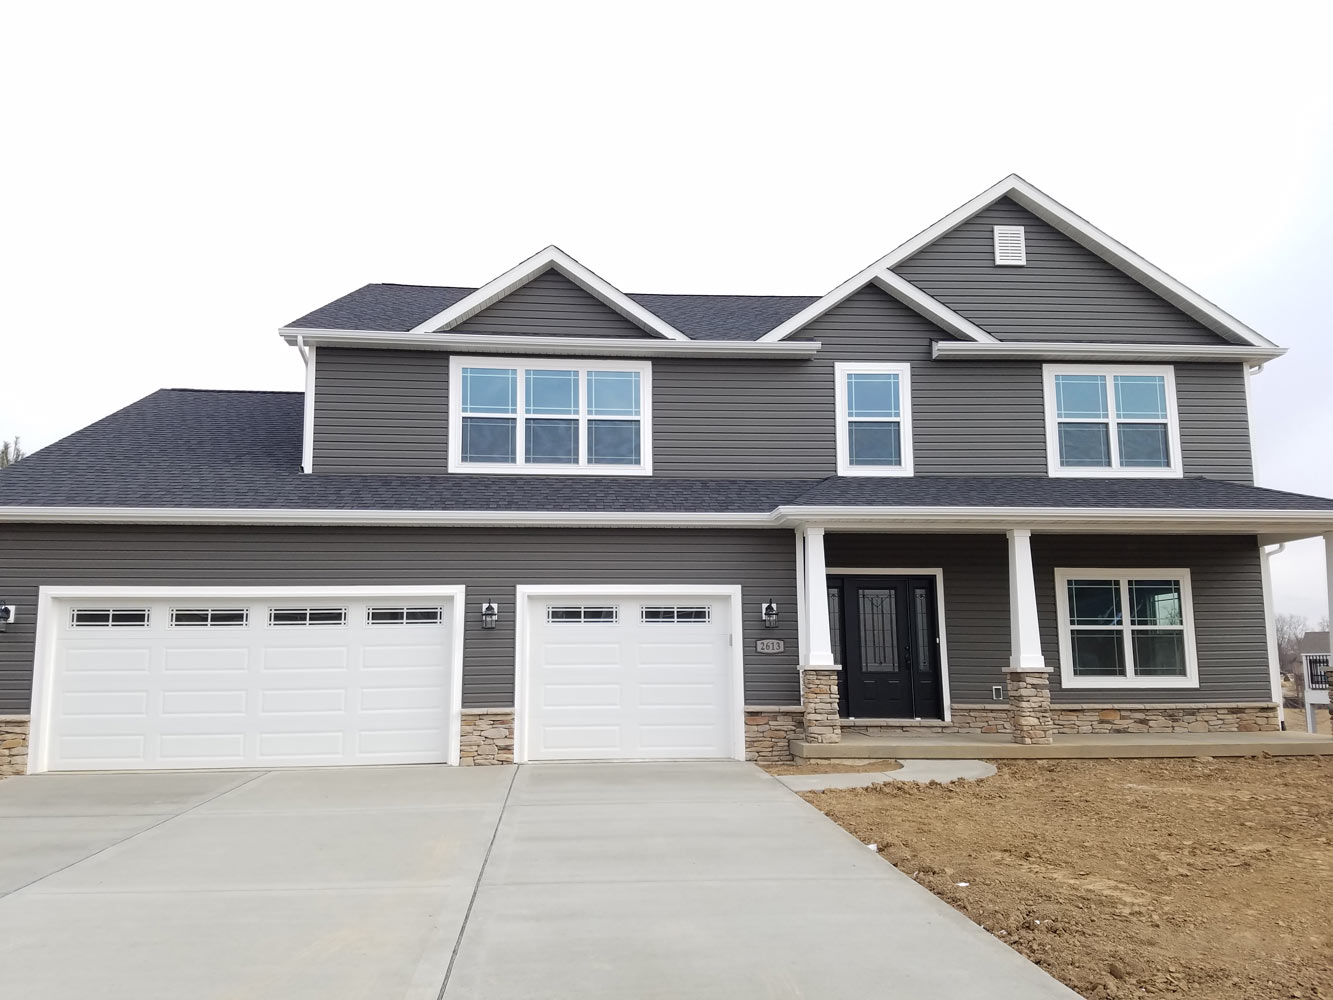 Belleville Illinois New Build by CNR Homes